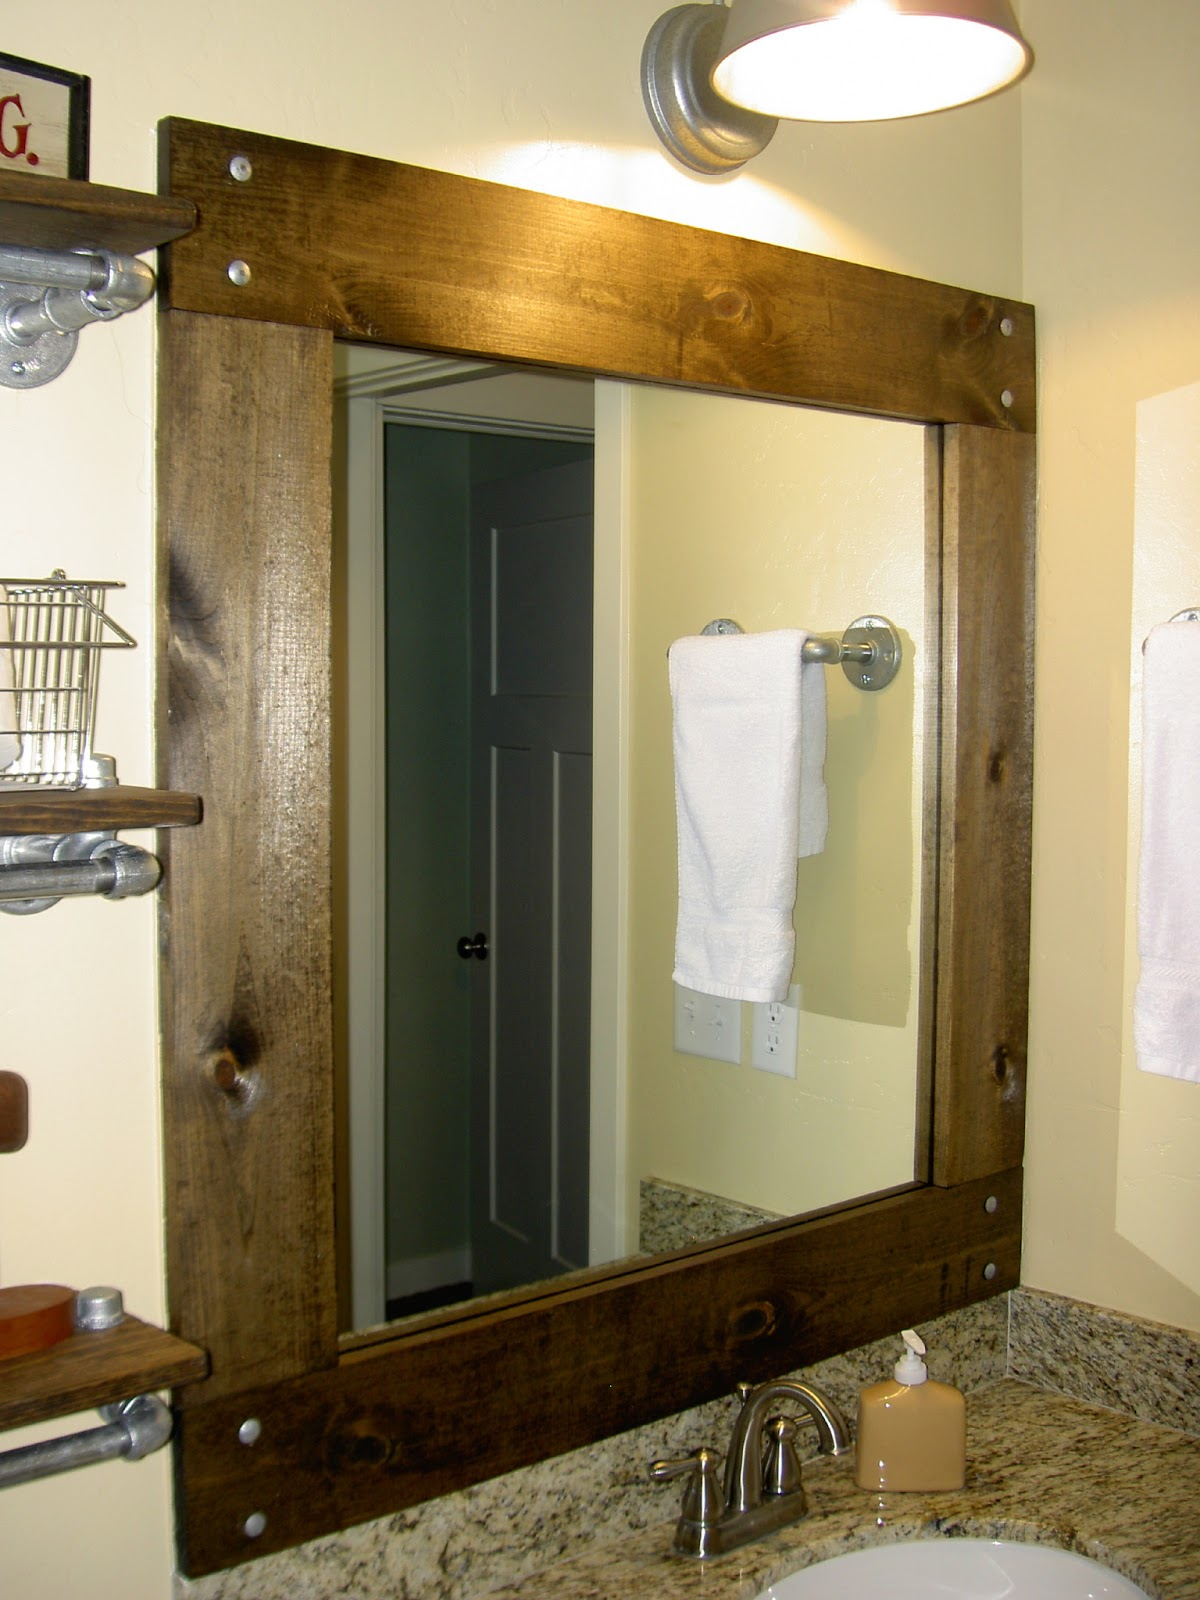 Mirror Frames For Bathrooms: Chapman Place: Framed Bathroom Mirror